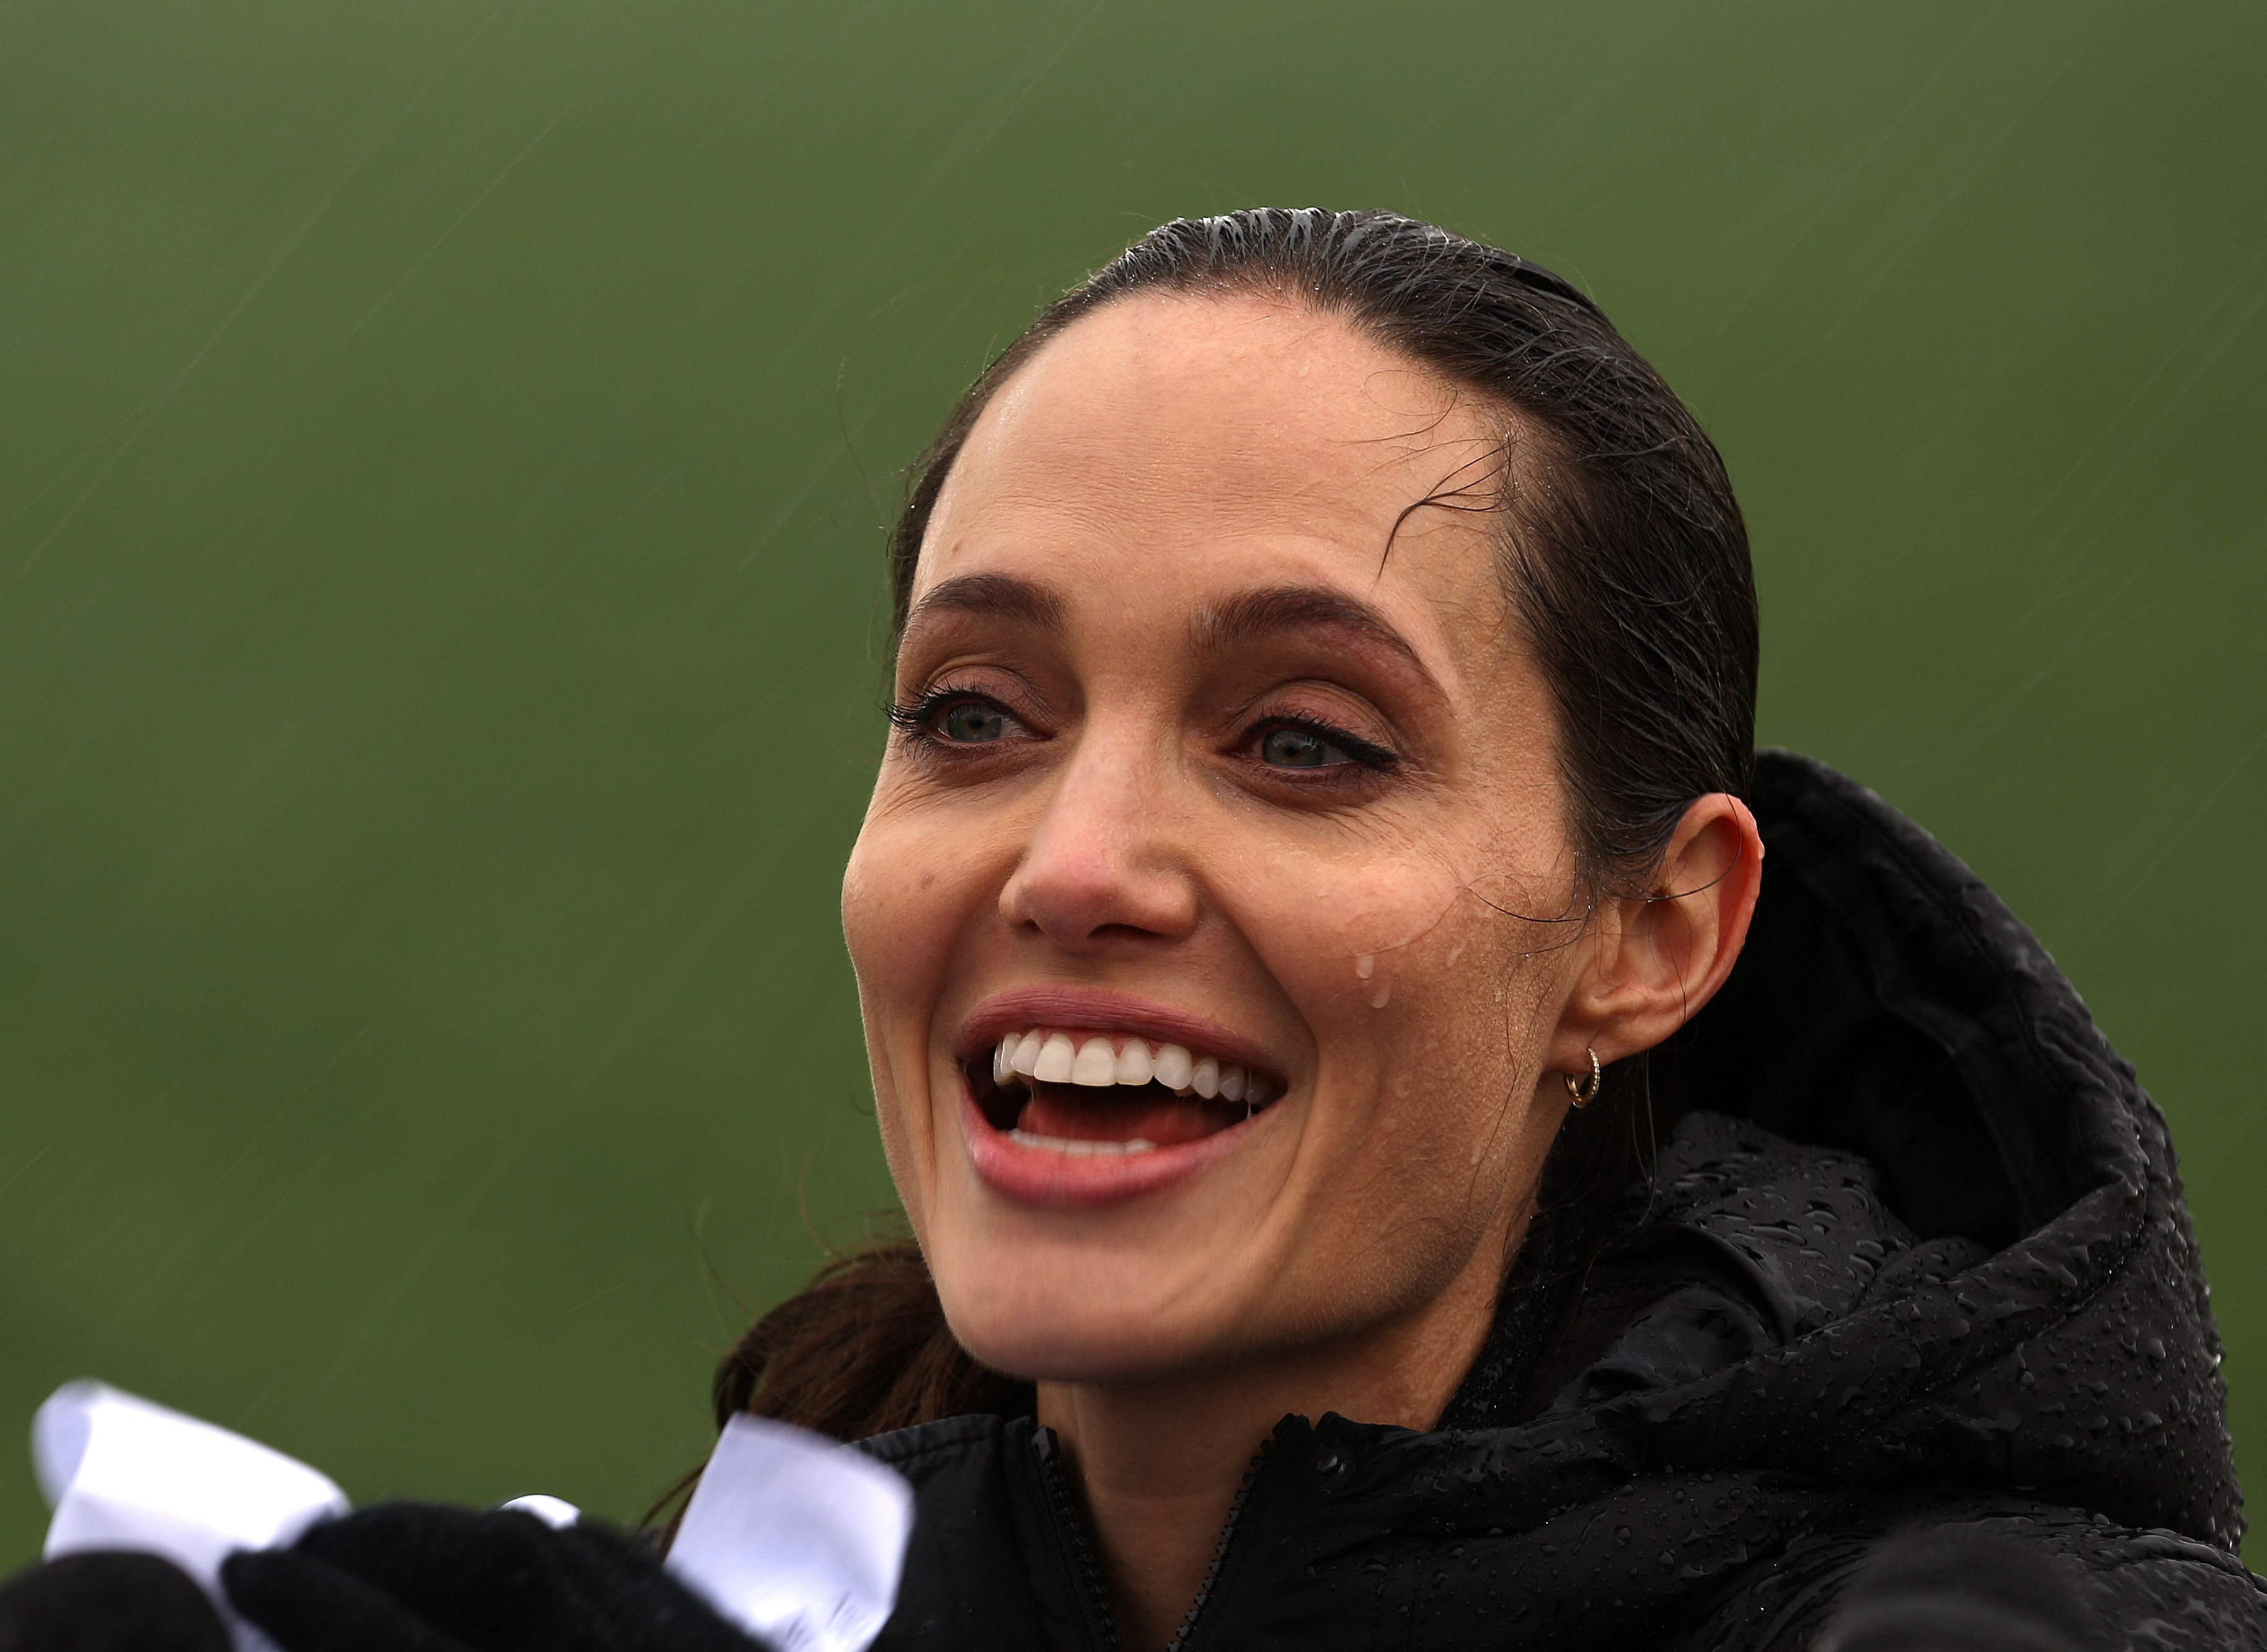 Special envoy of the UN High Commissioner for Refugees, US actress Angelina Jolie reacts during a press conference under the rain as part of her visit at a Syrian refugee camp near the city of Zahle in Lebanon's Bekaa Valley on March 15, 2016.